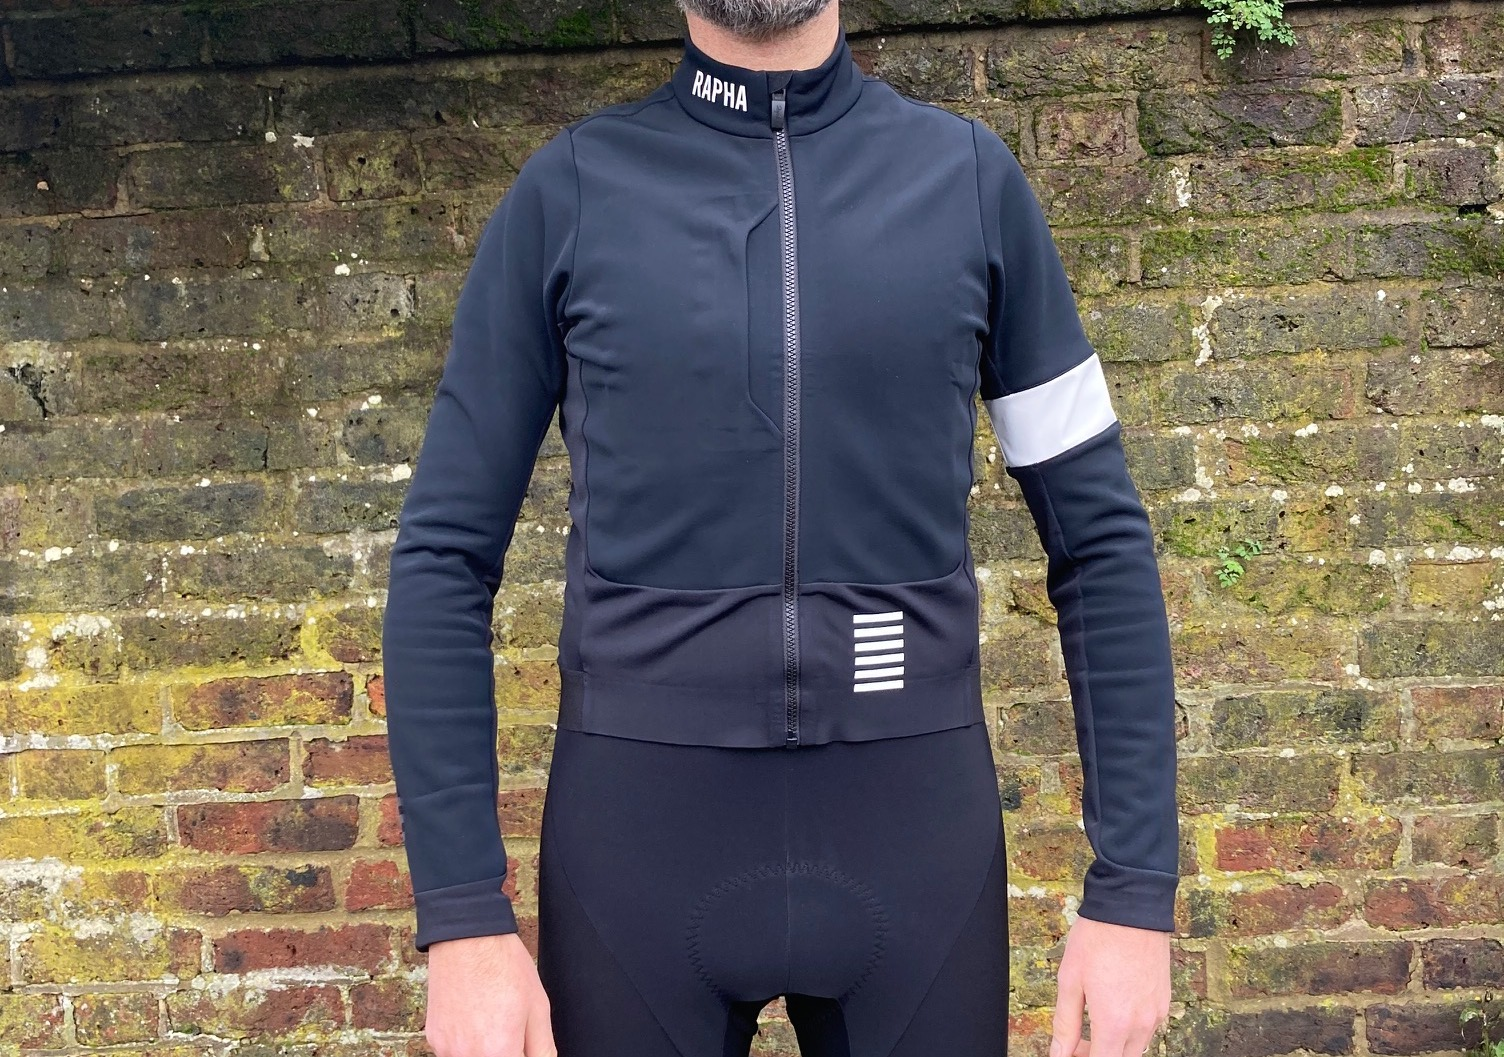 Rapha Pro Team Winter Jacket review